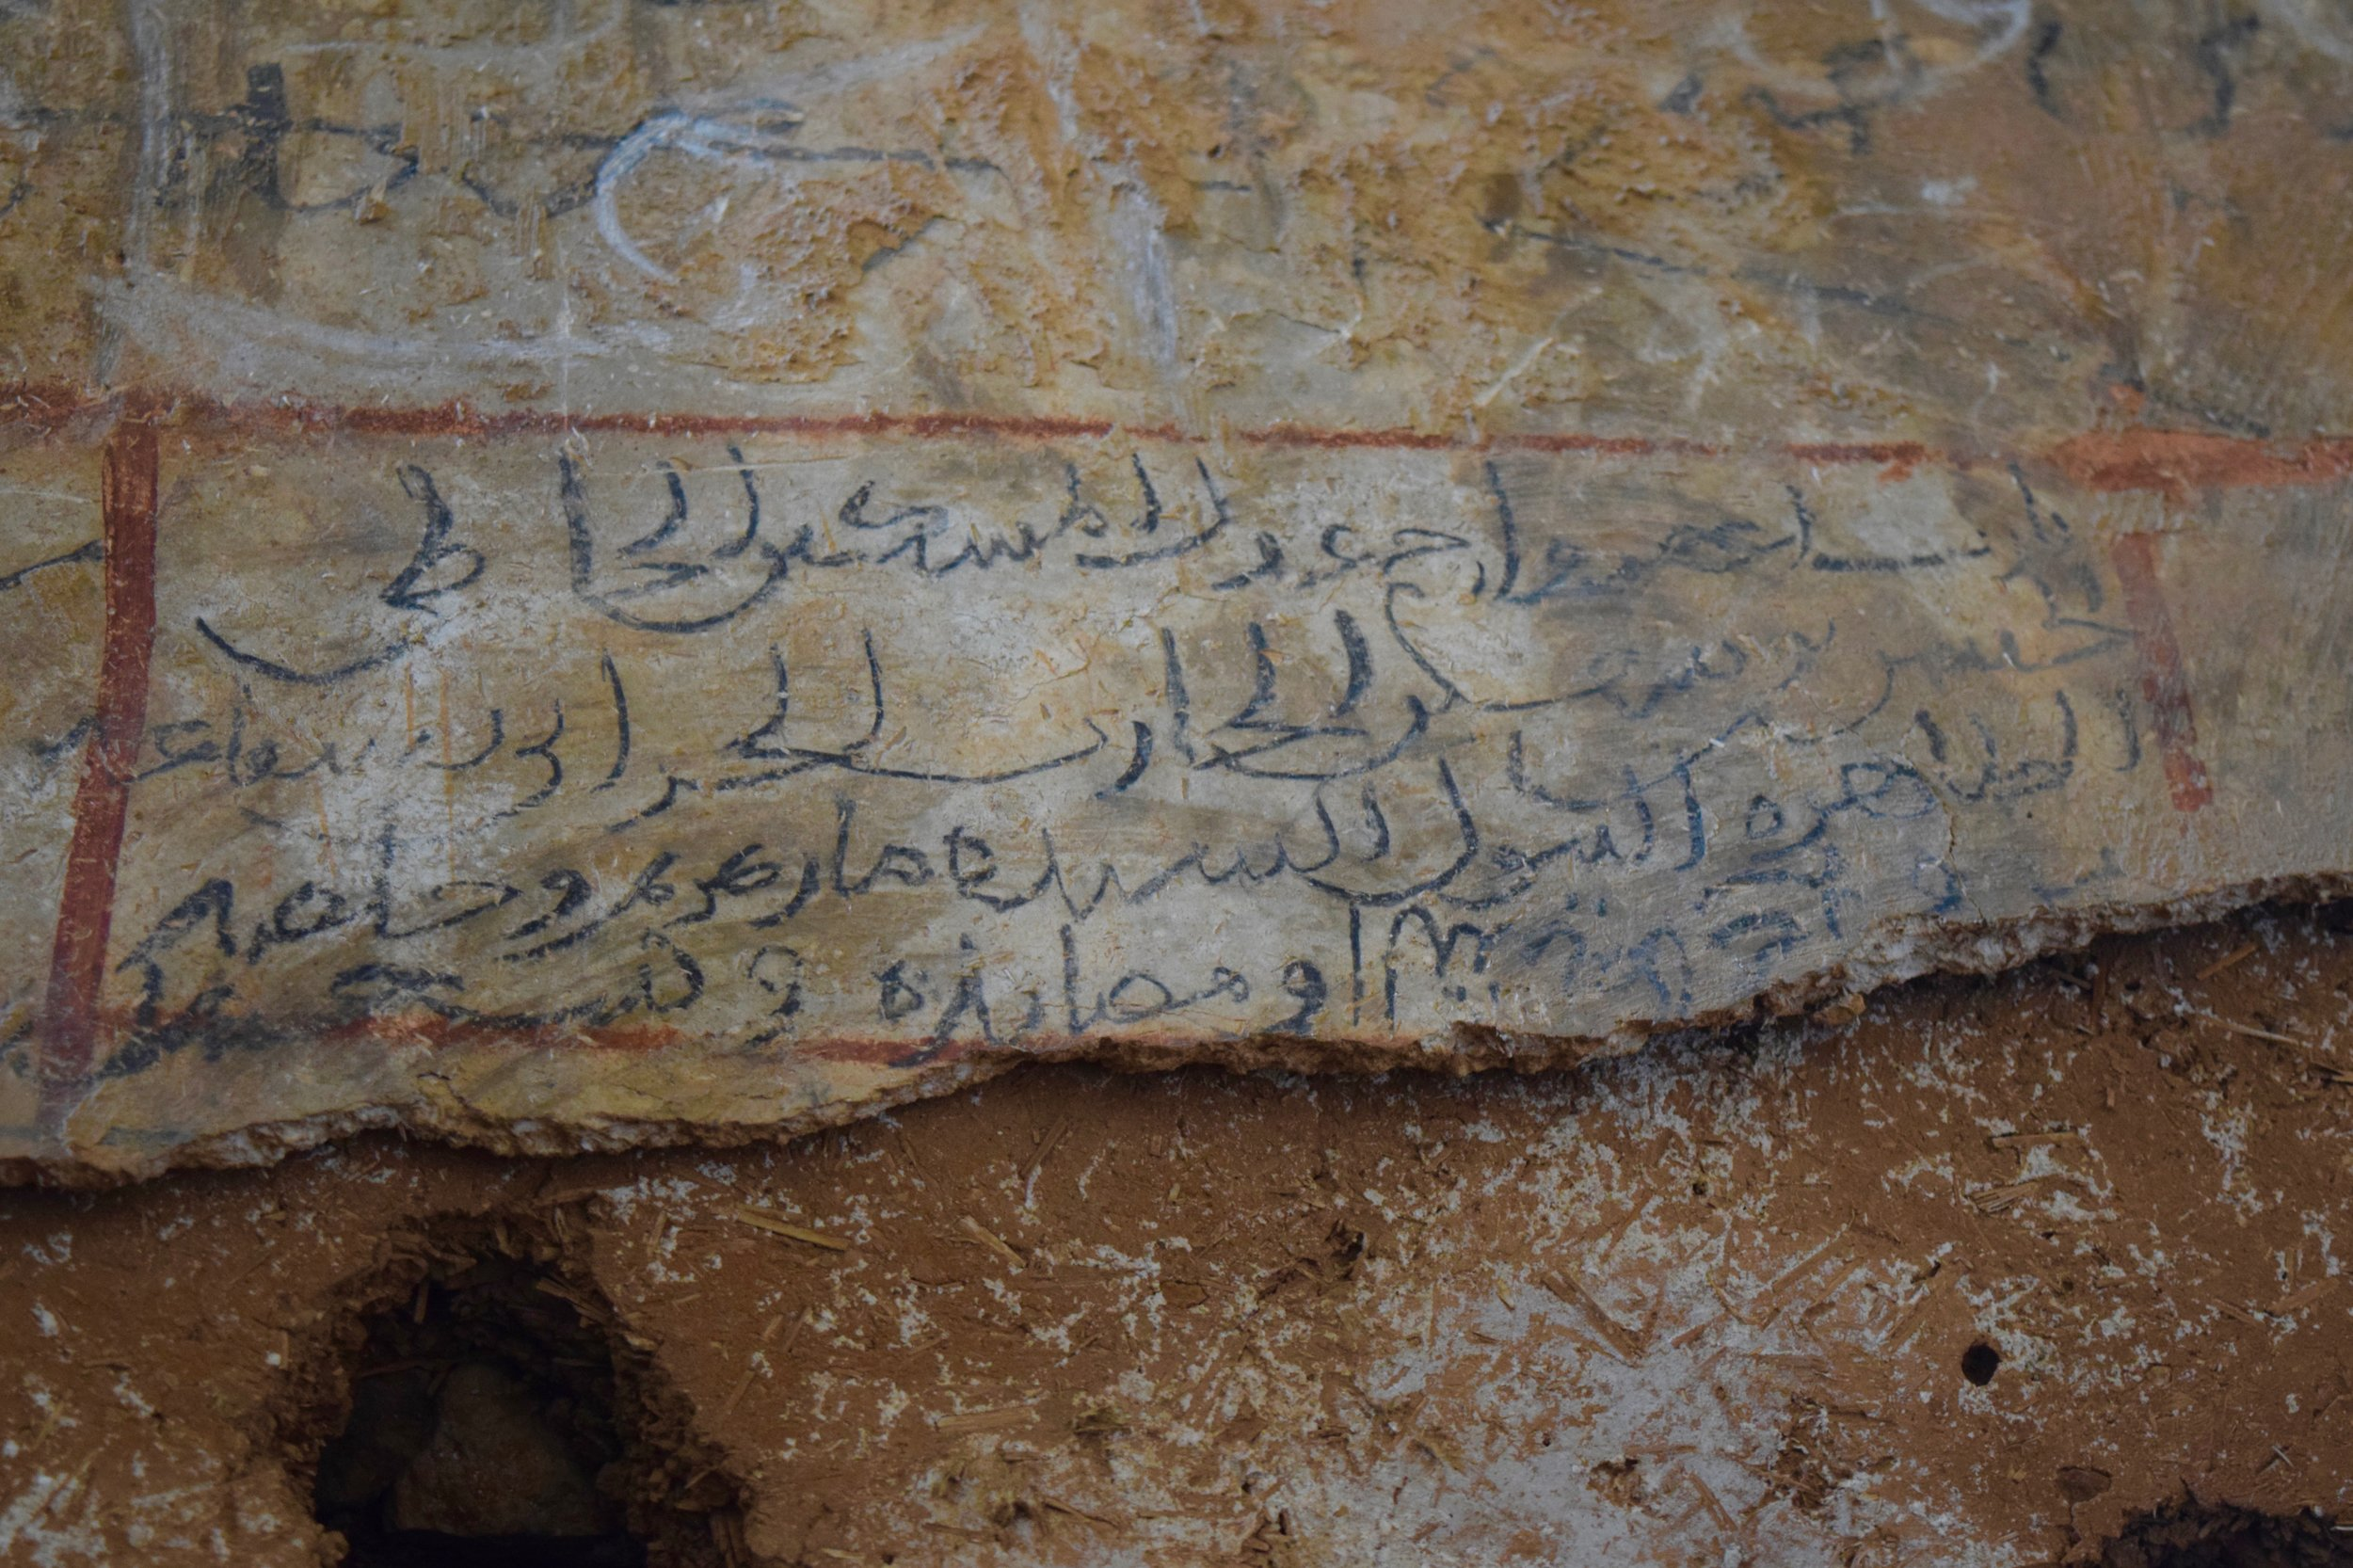 Inscription in Arabic with Satan's name written upside down